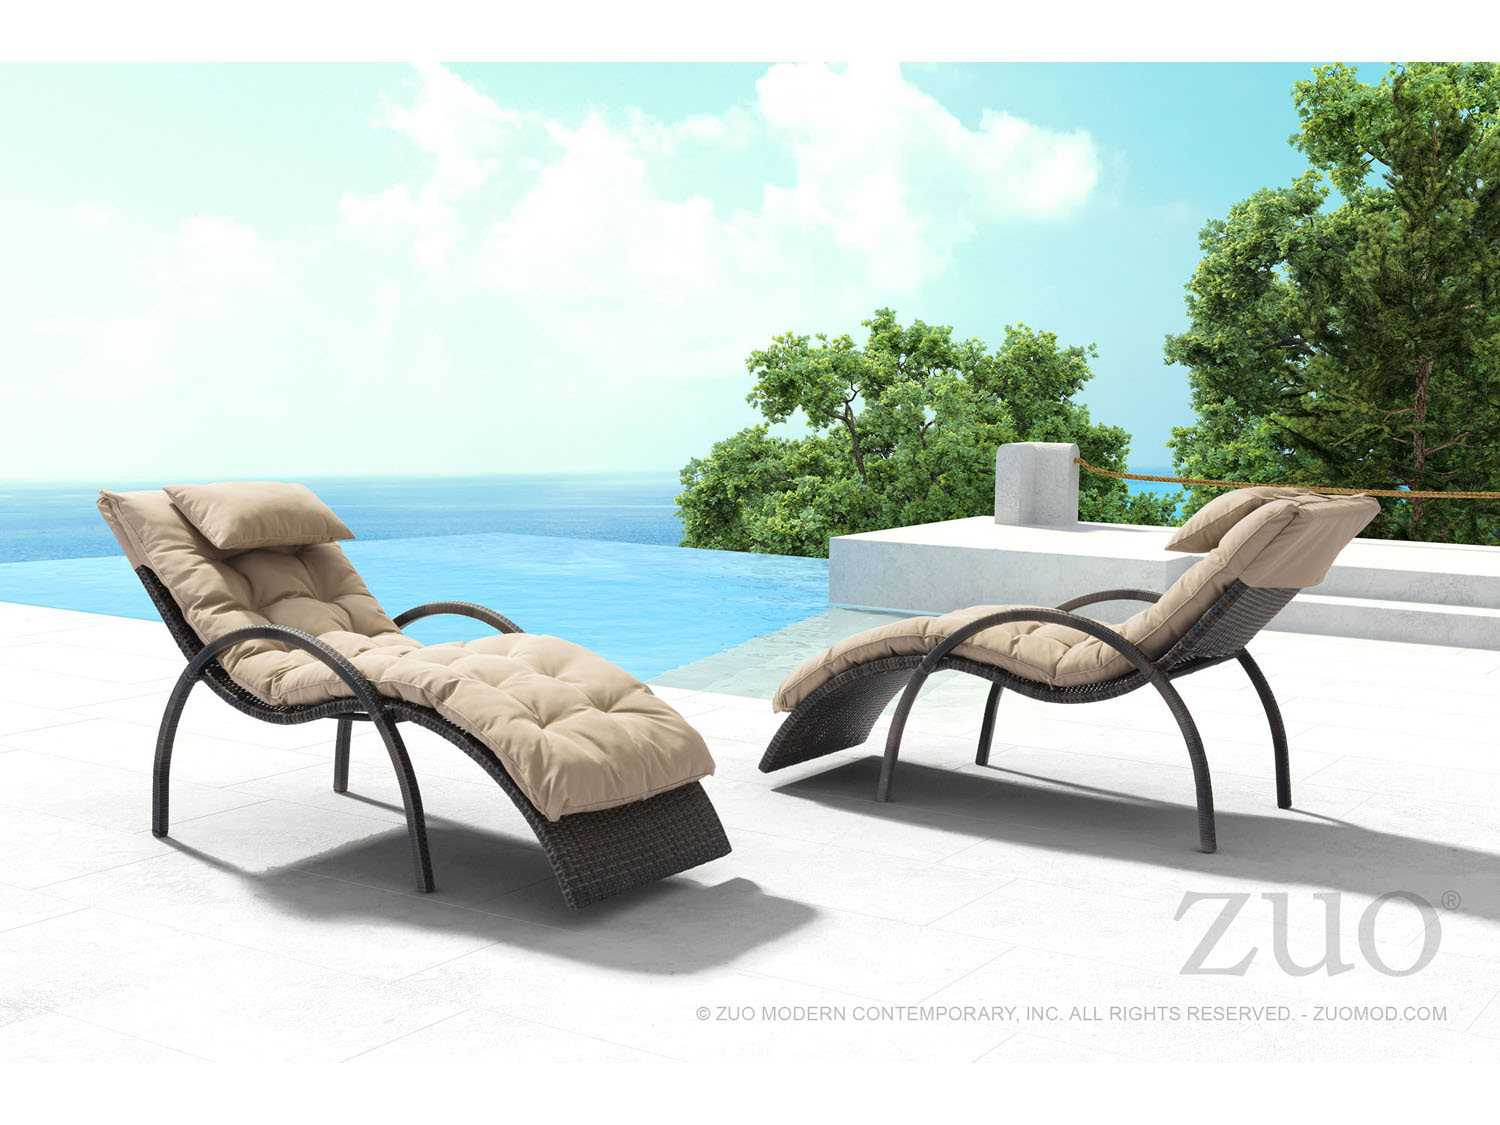 Zuo outdoor eggertz beach aluminum wicker beach chaise for Beach chaise lounger